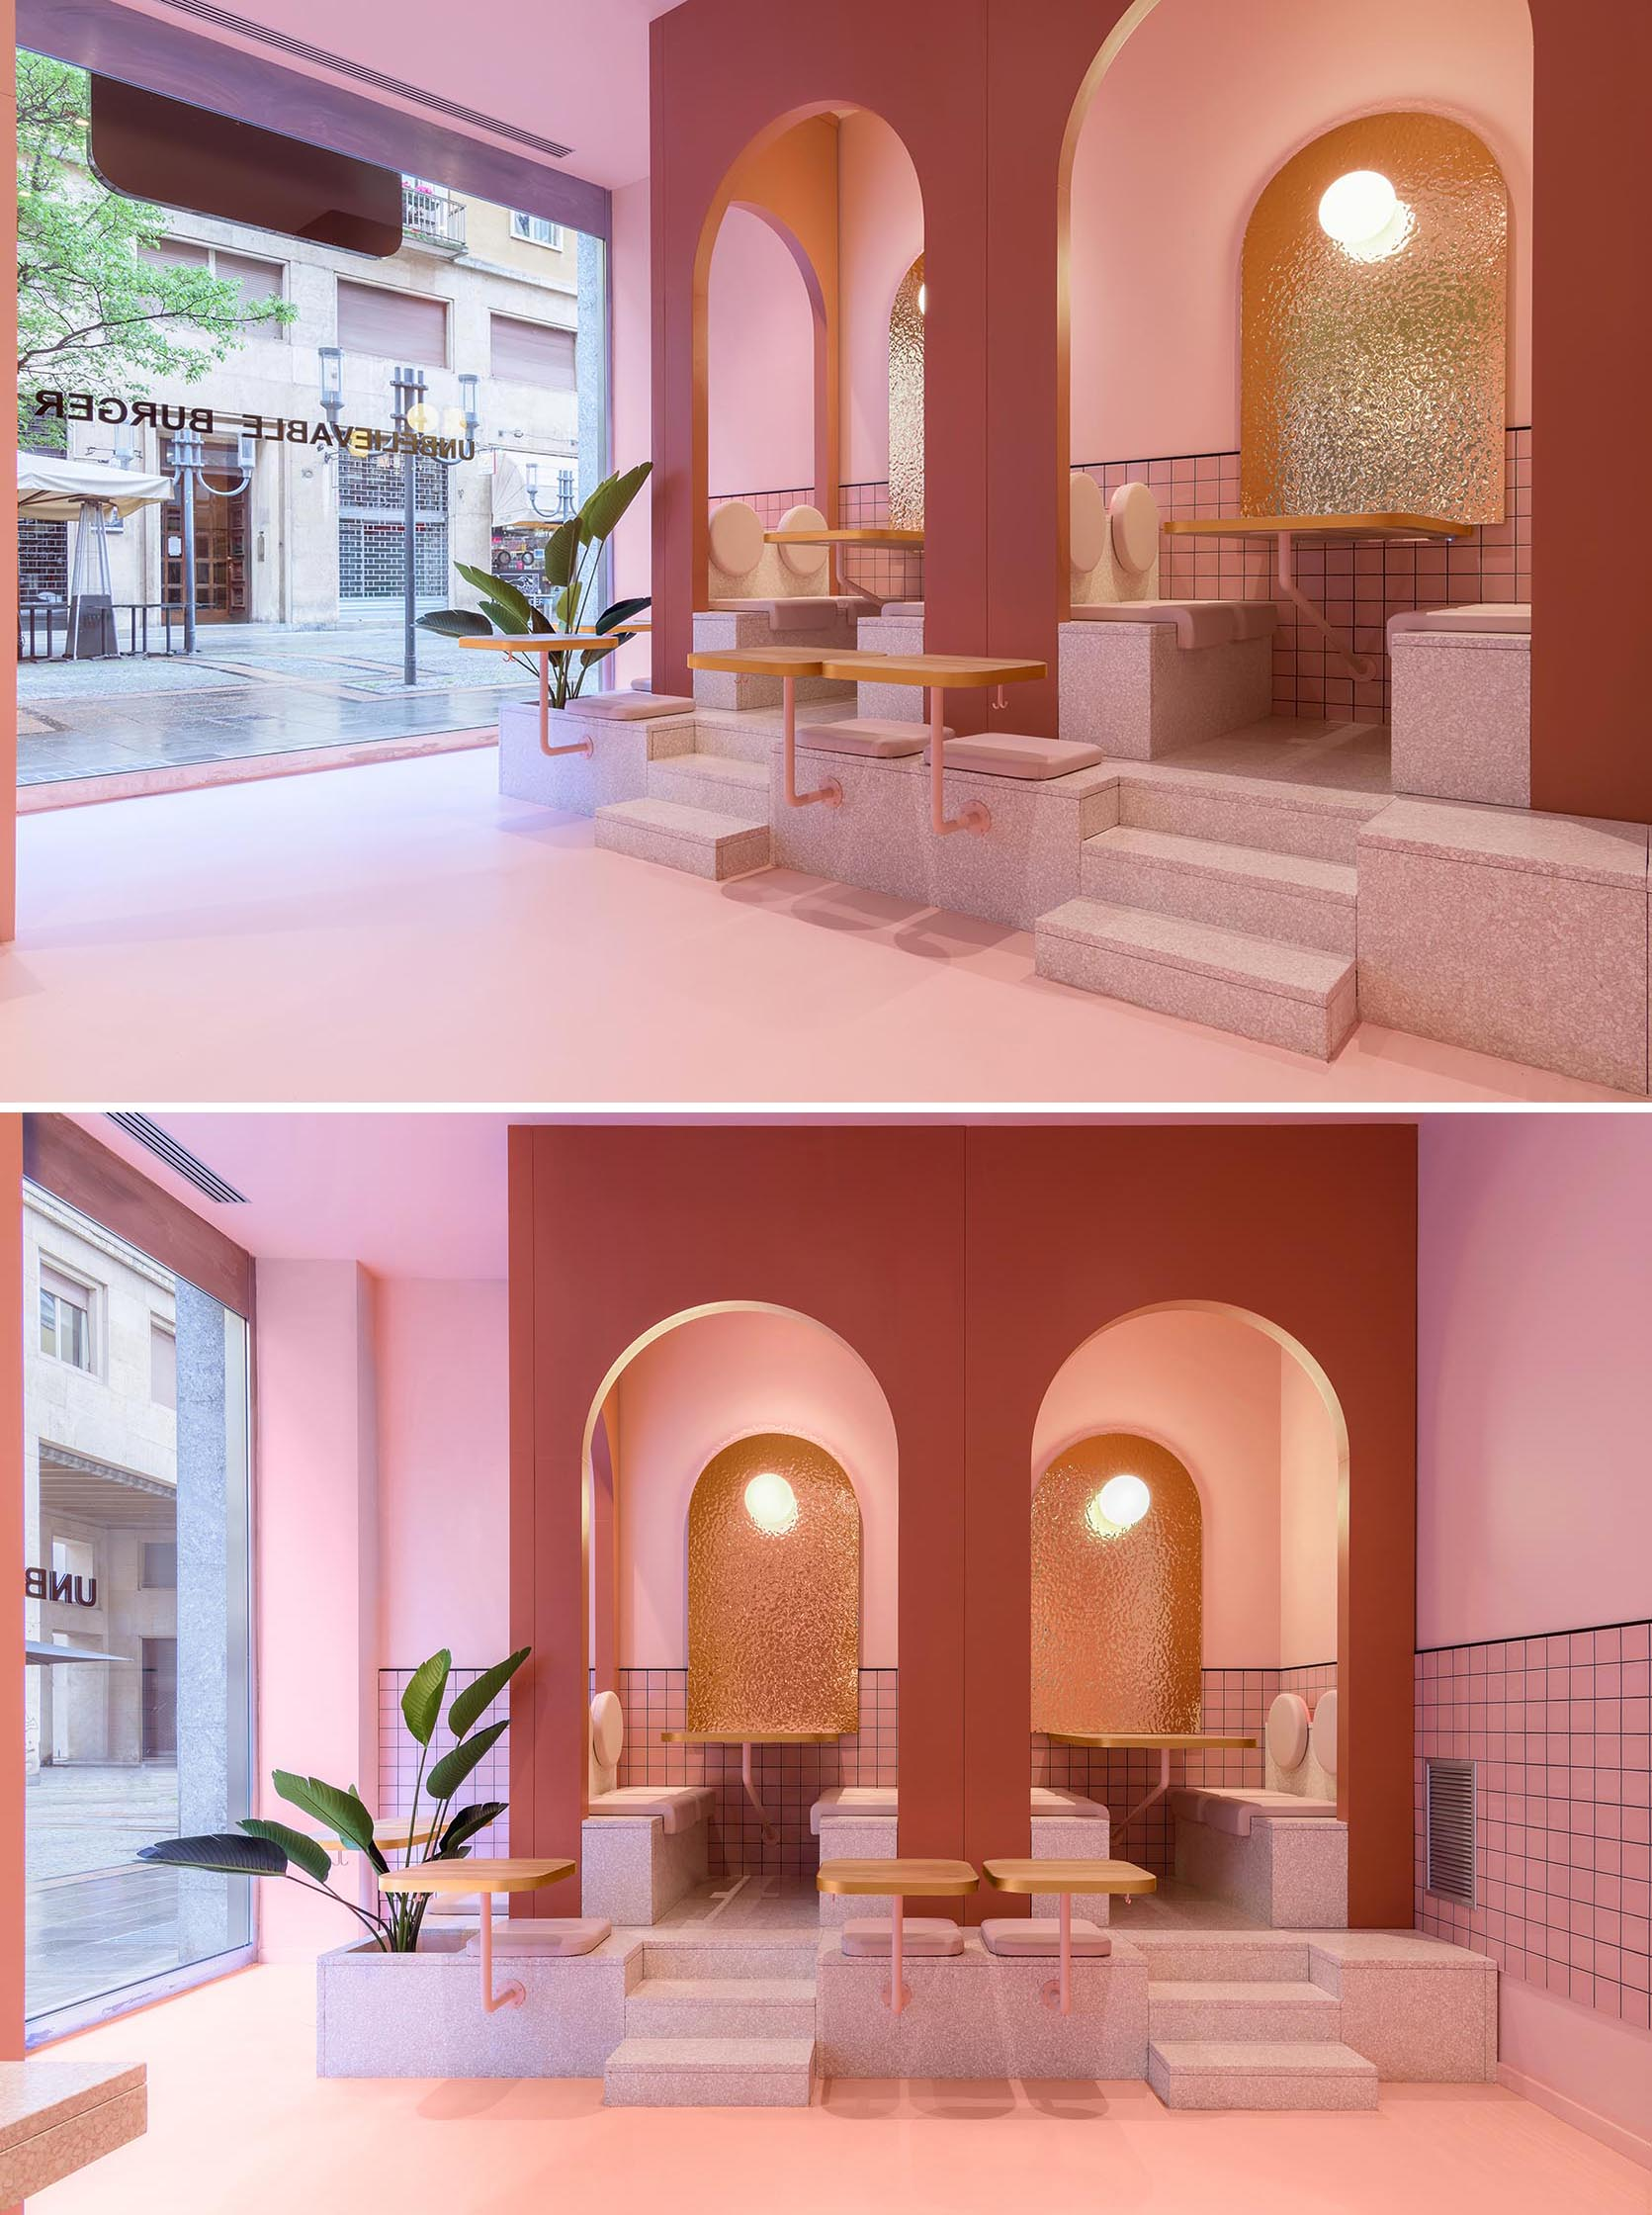 A modern restaurant interior with a pink zone that has raised seating within arches.